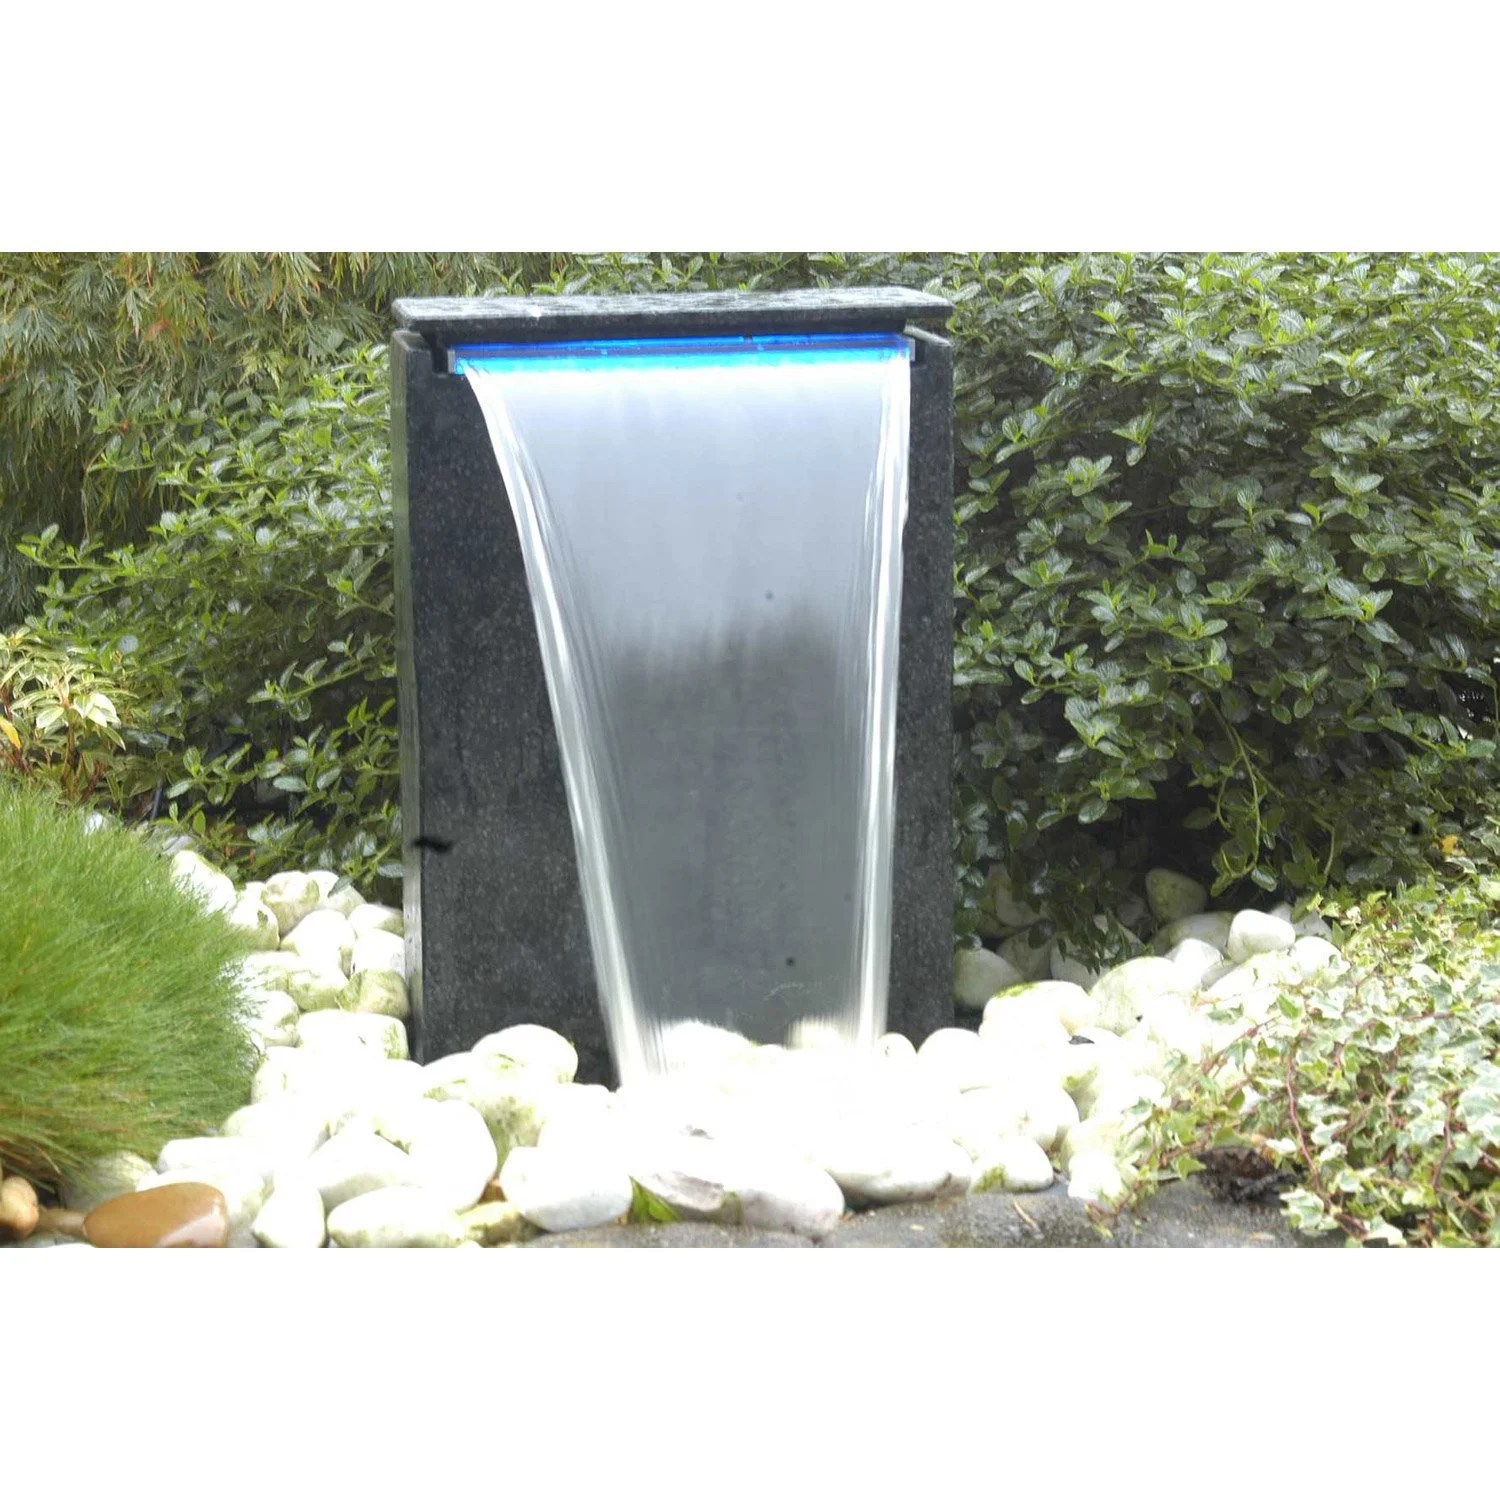 Decoration Fontaine Interieur Kit Fontaine Ubbink Vicenza Cascade Pompe Noir H 48 Cm